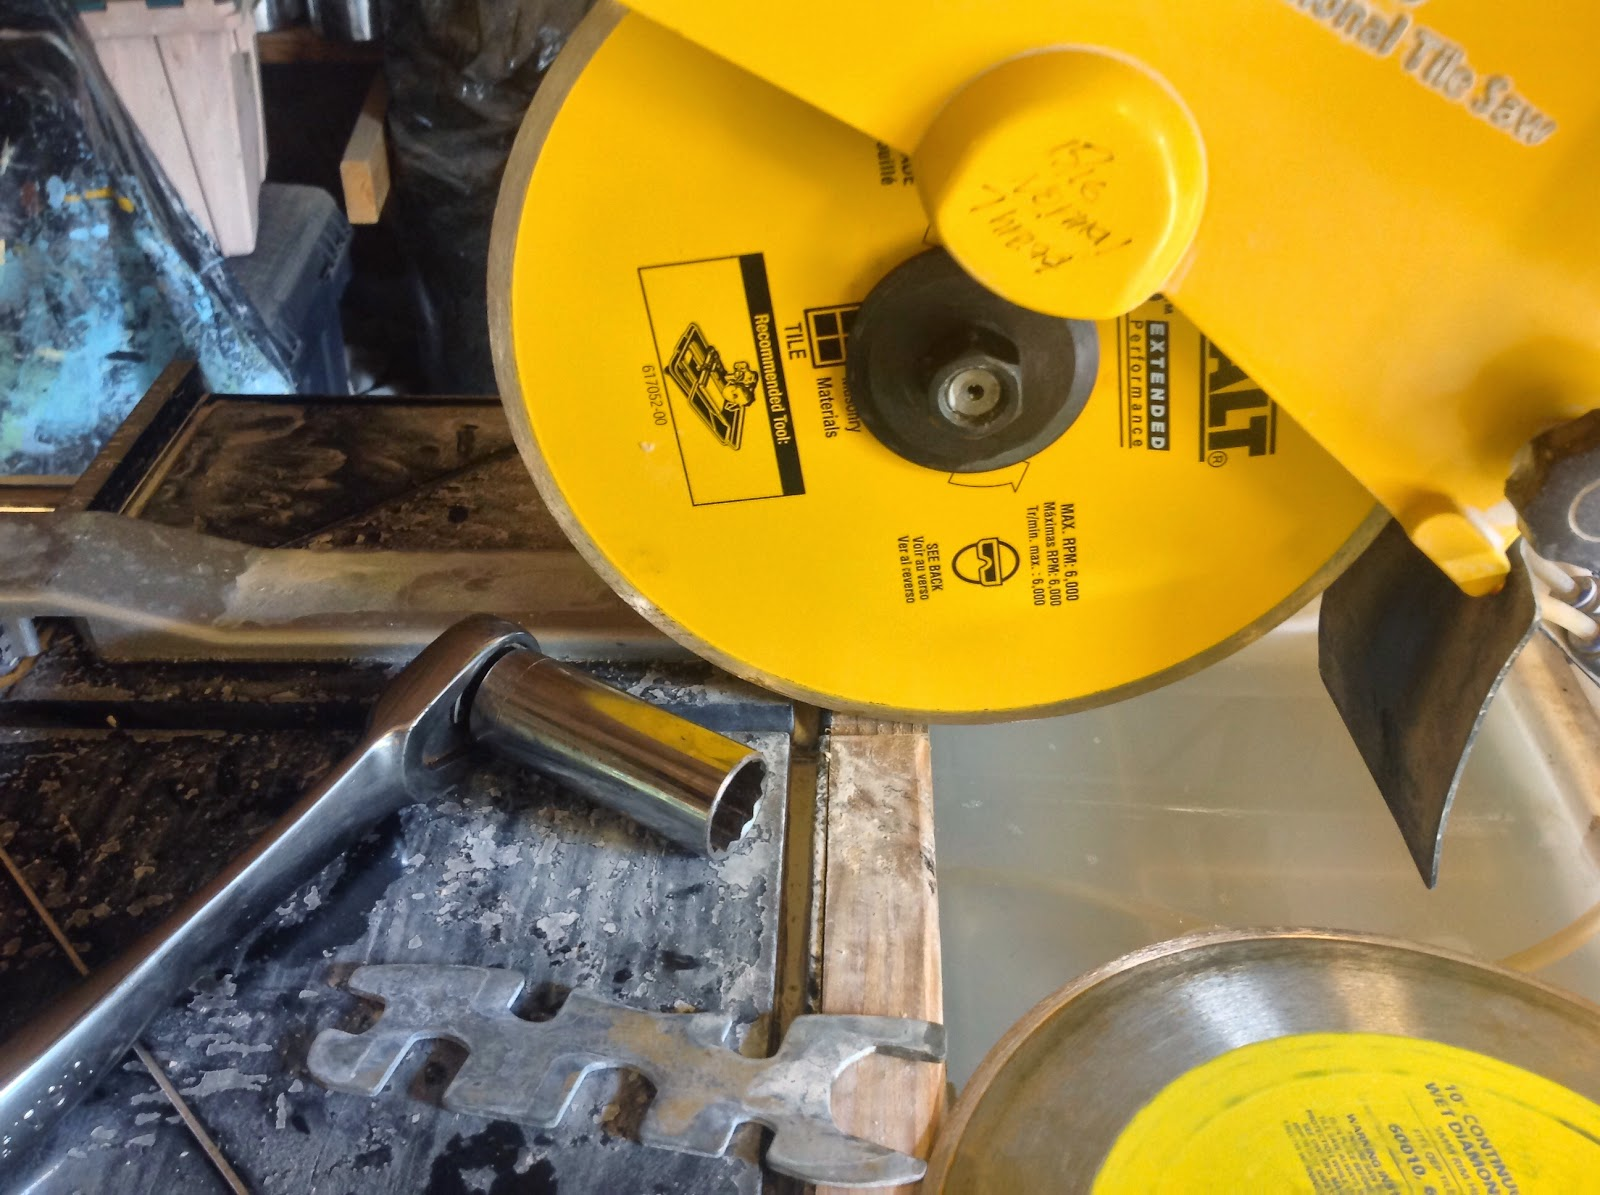 How to use a tile wet saw tips for those wet behind the ears tile saw blade change greentooth Image collections